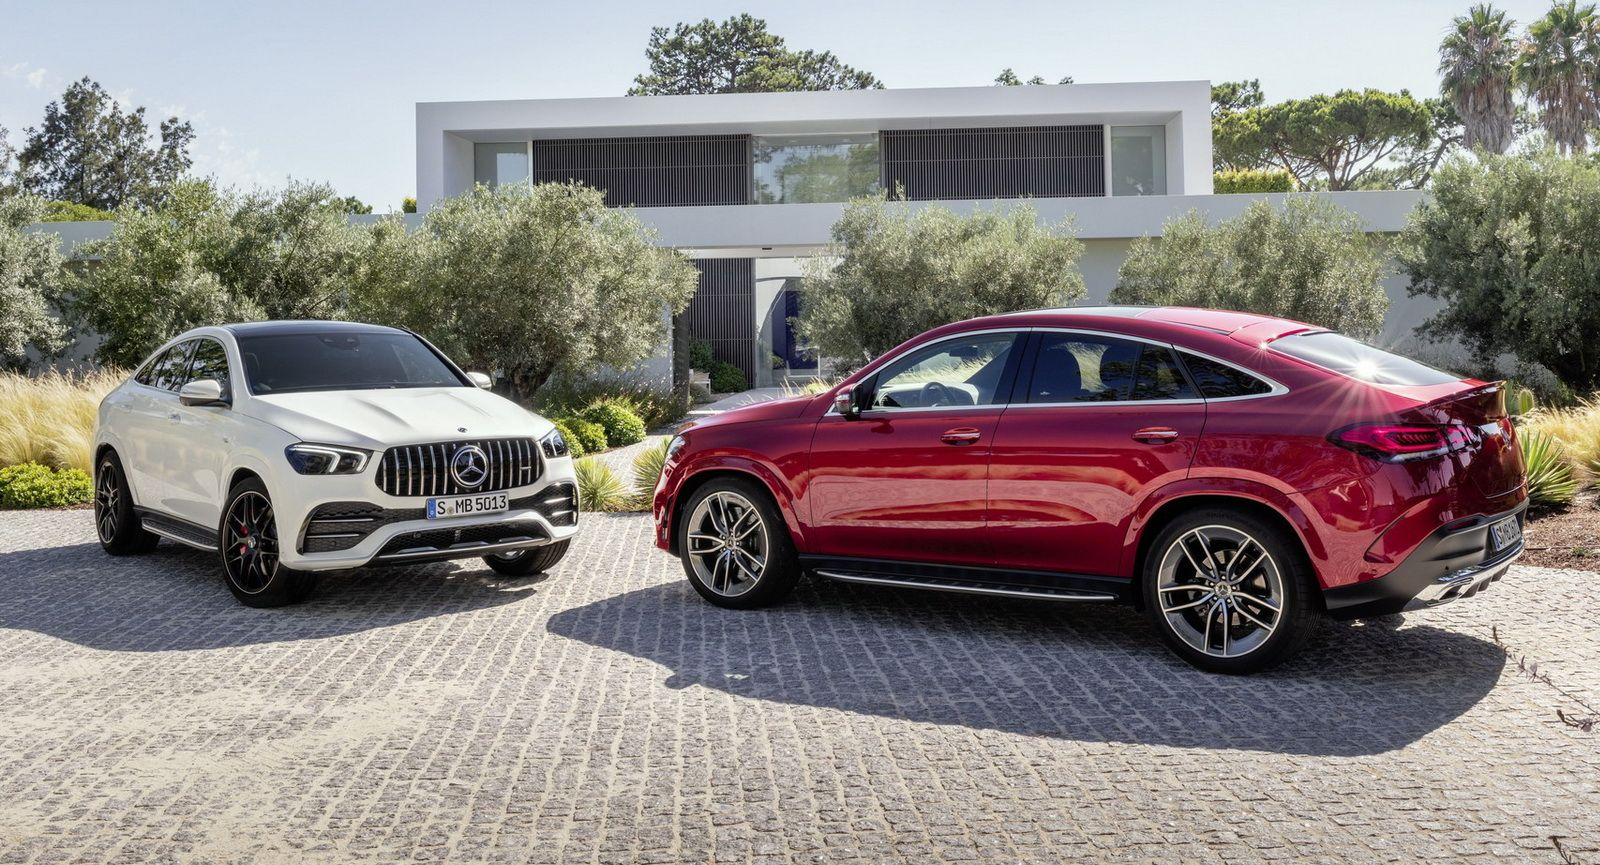 2020 Mercedes Benz Gle Coupe Launches In The Uk Priced From